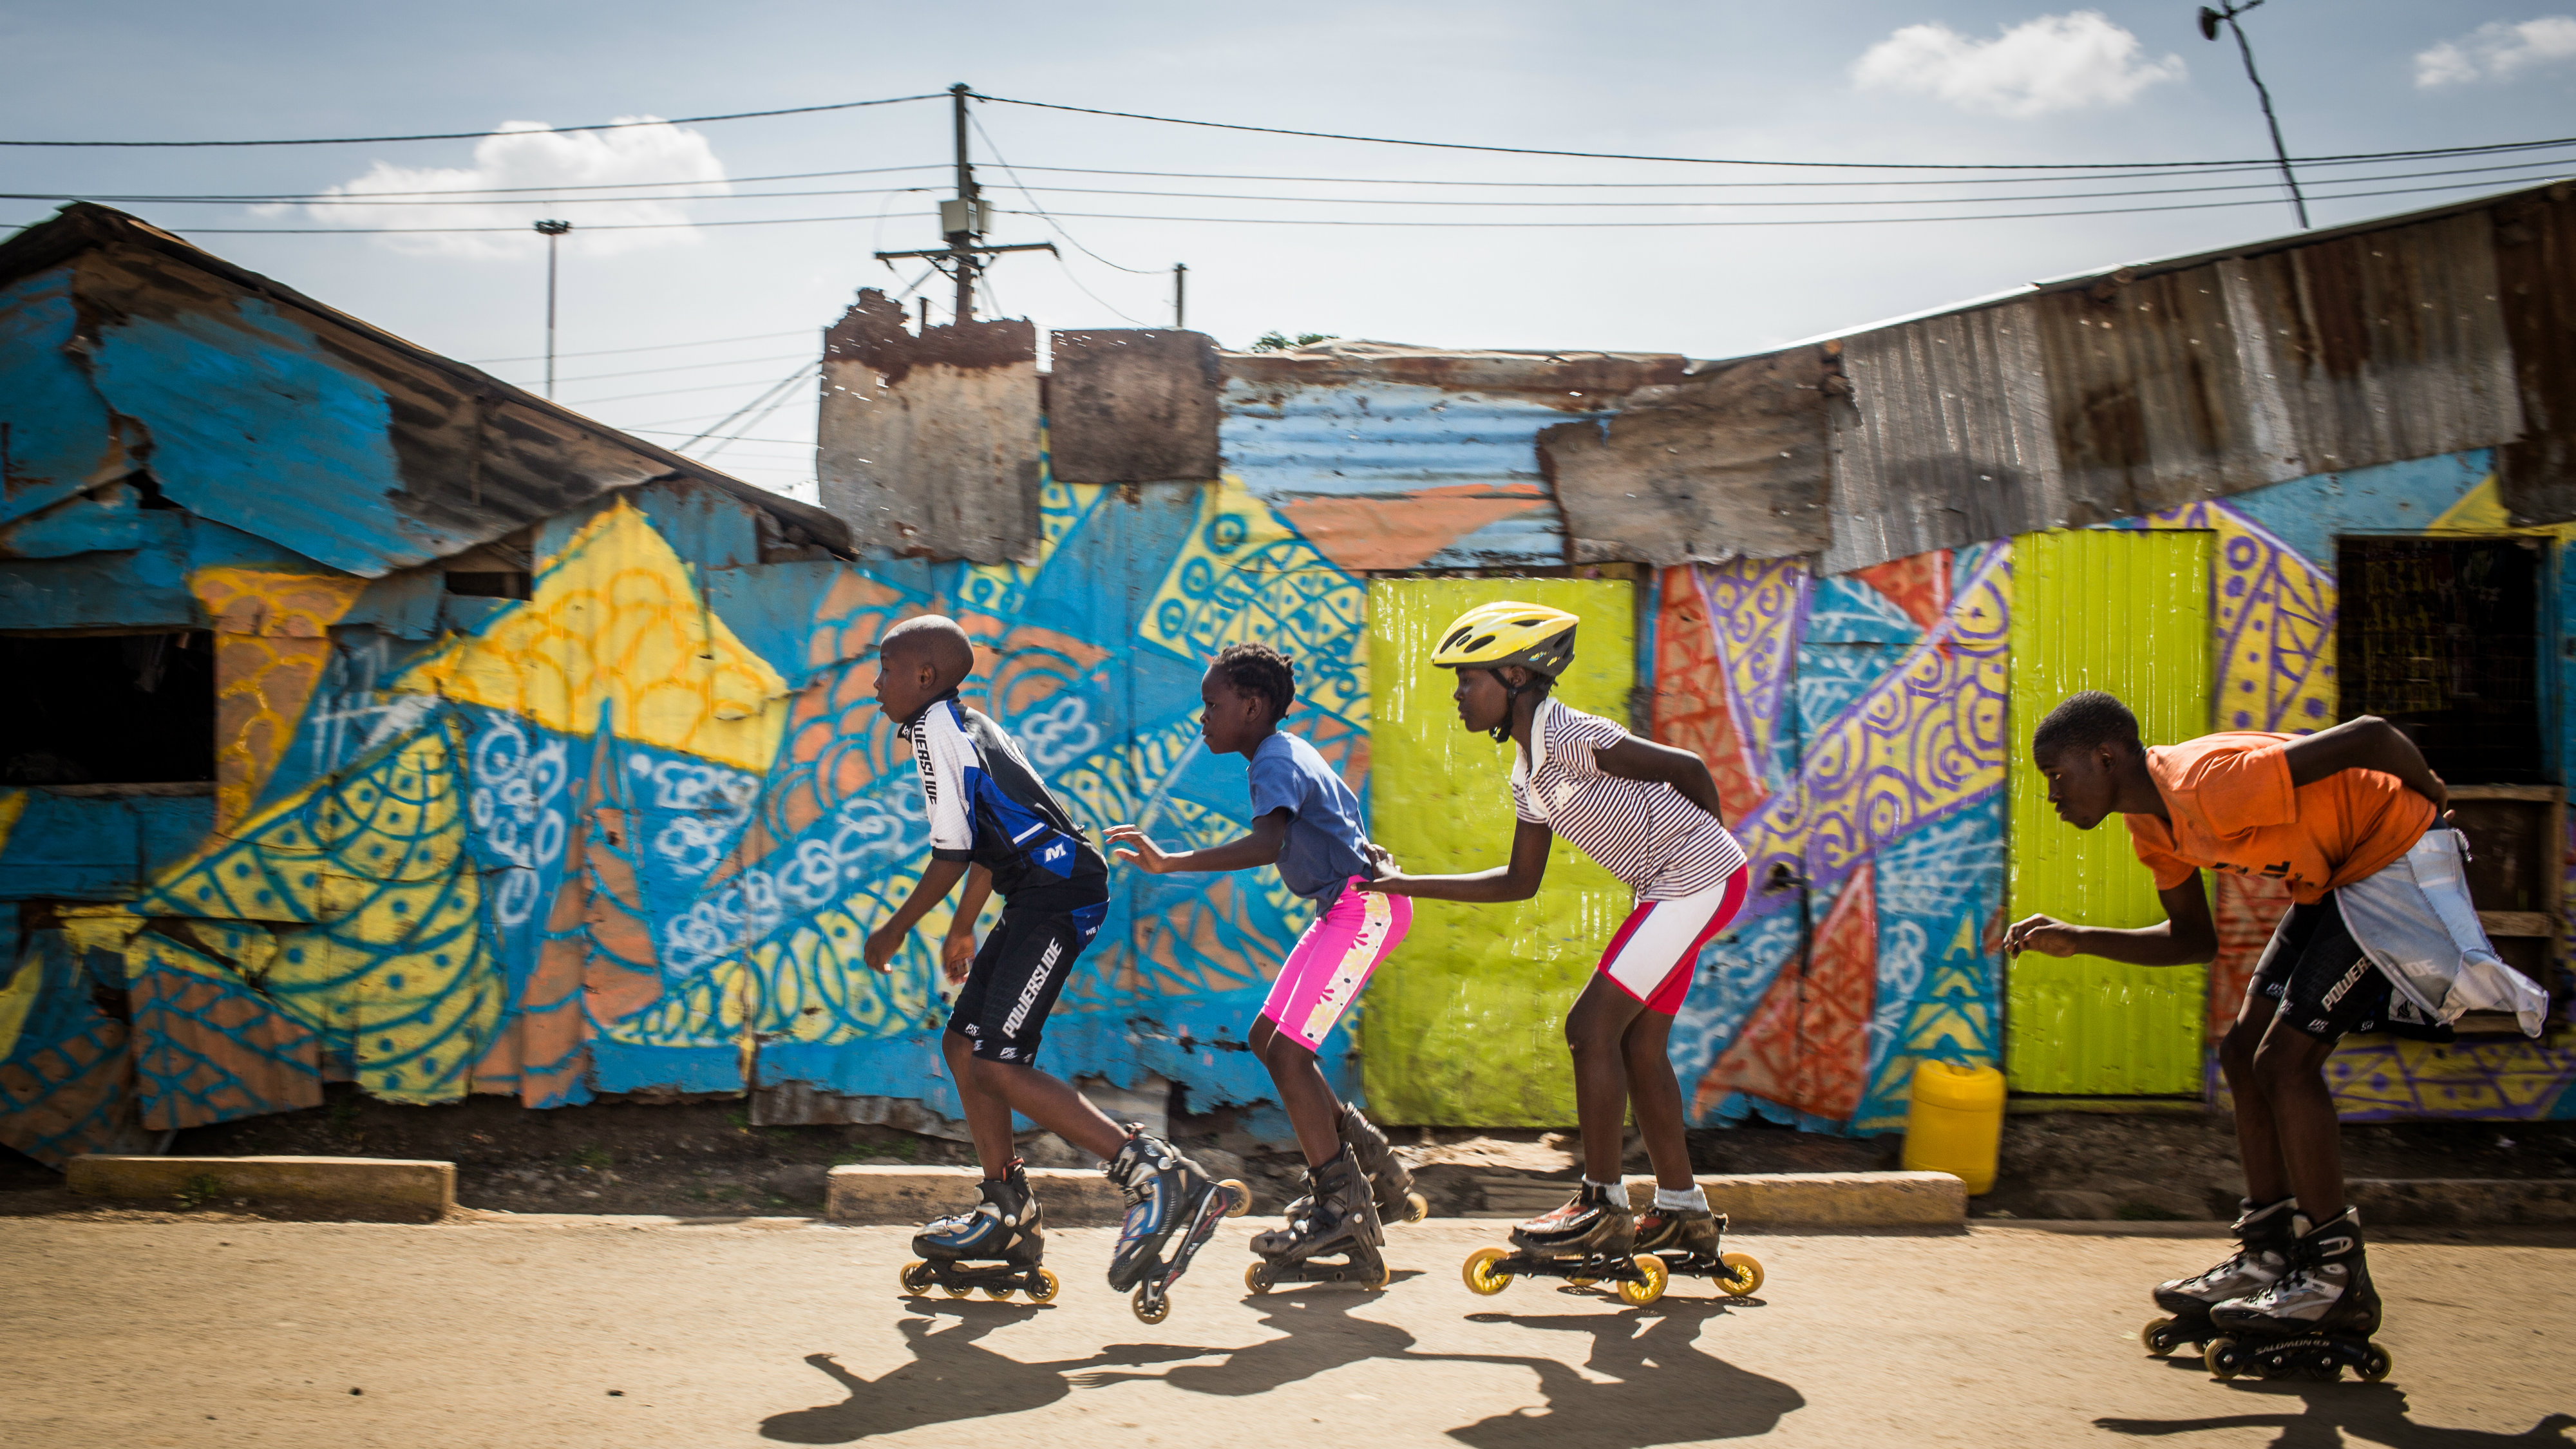 Korogocho skaters are taking advantage of some of the best streets in one of Nairobi's poorest slums.